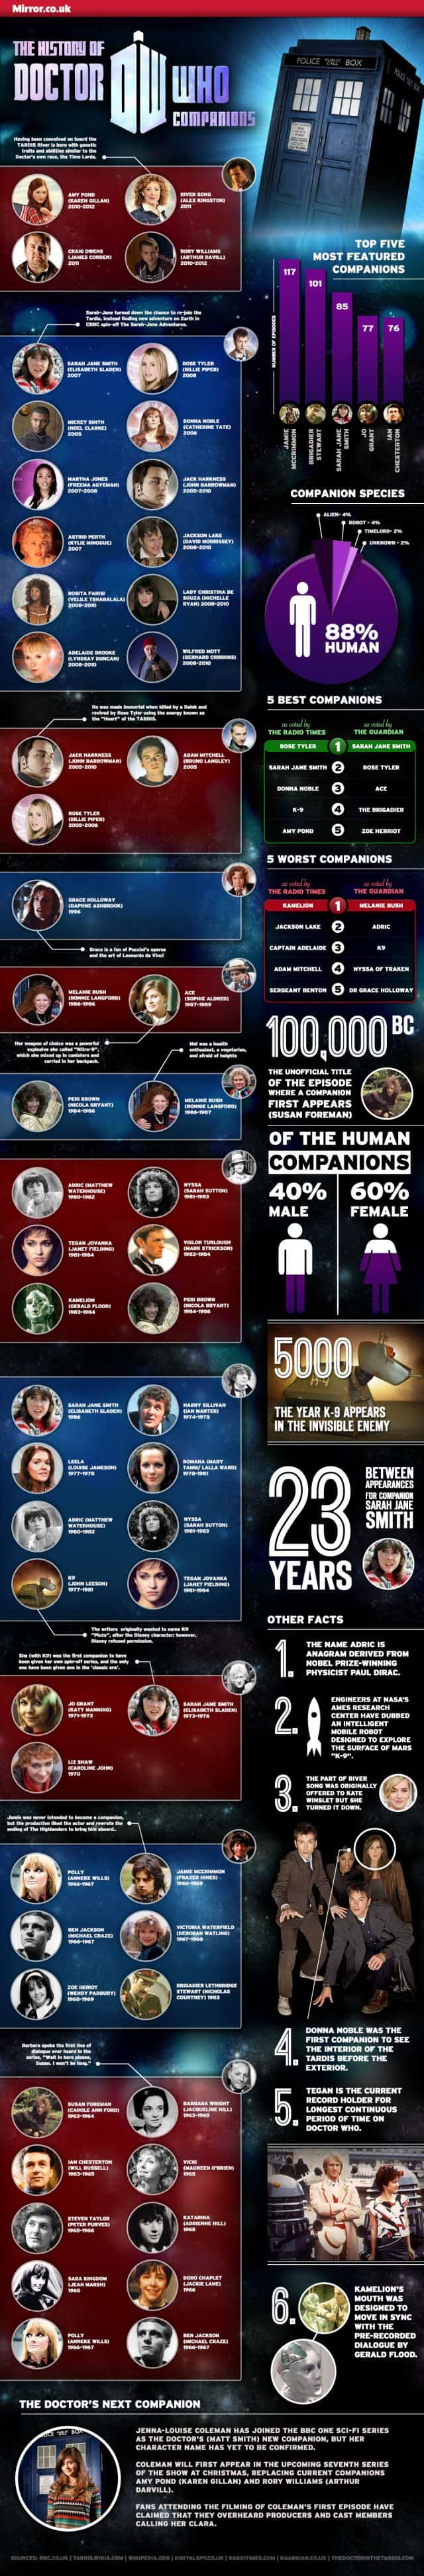 History of Doctor Who Companions